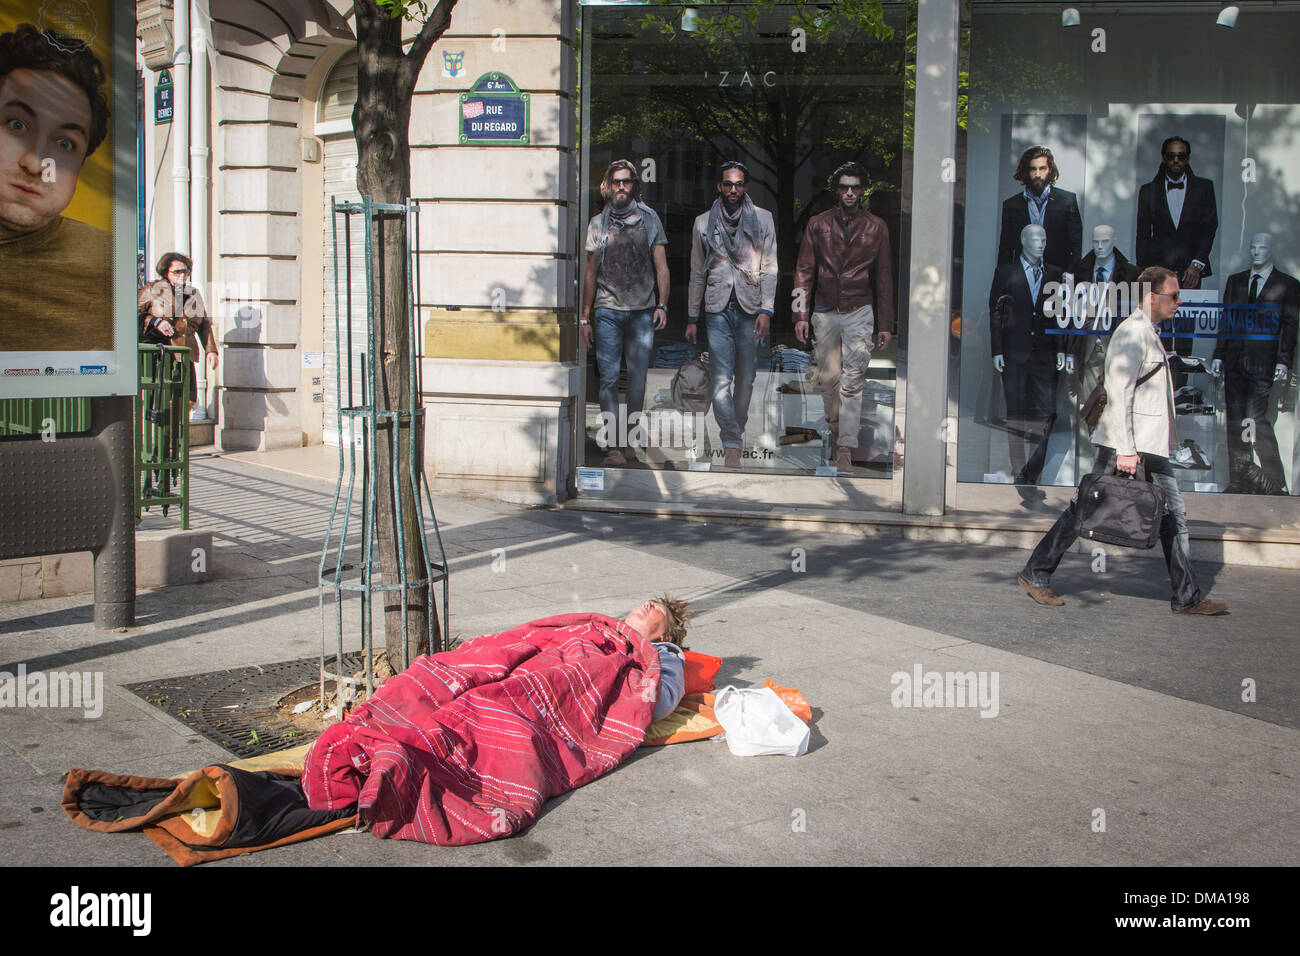 HOMELESS WOMAN LYING ON THE SIDEWALK, MISERY AND POVERTY, RUE DU REGARD, 6TH ARRONDISSEMENT, PARIS, FRANCE - Stock Image